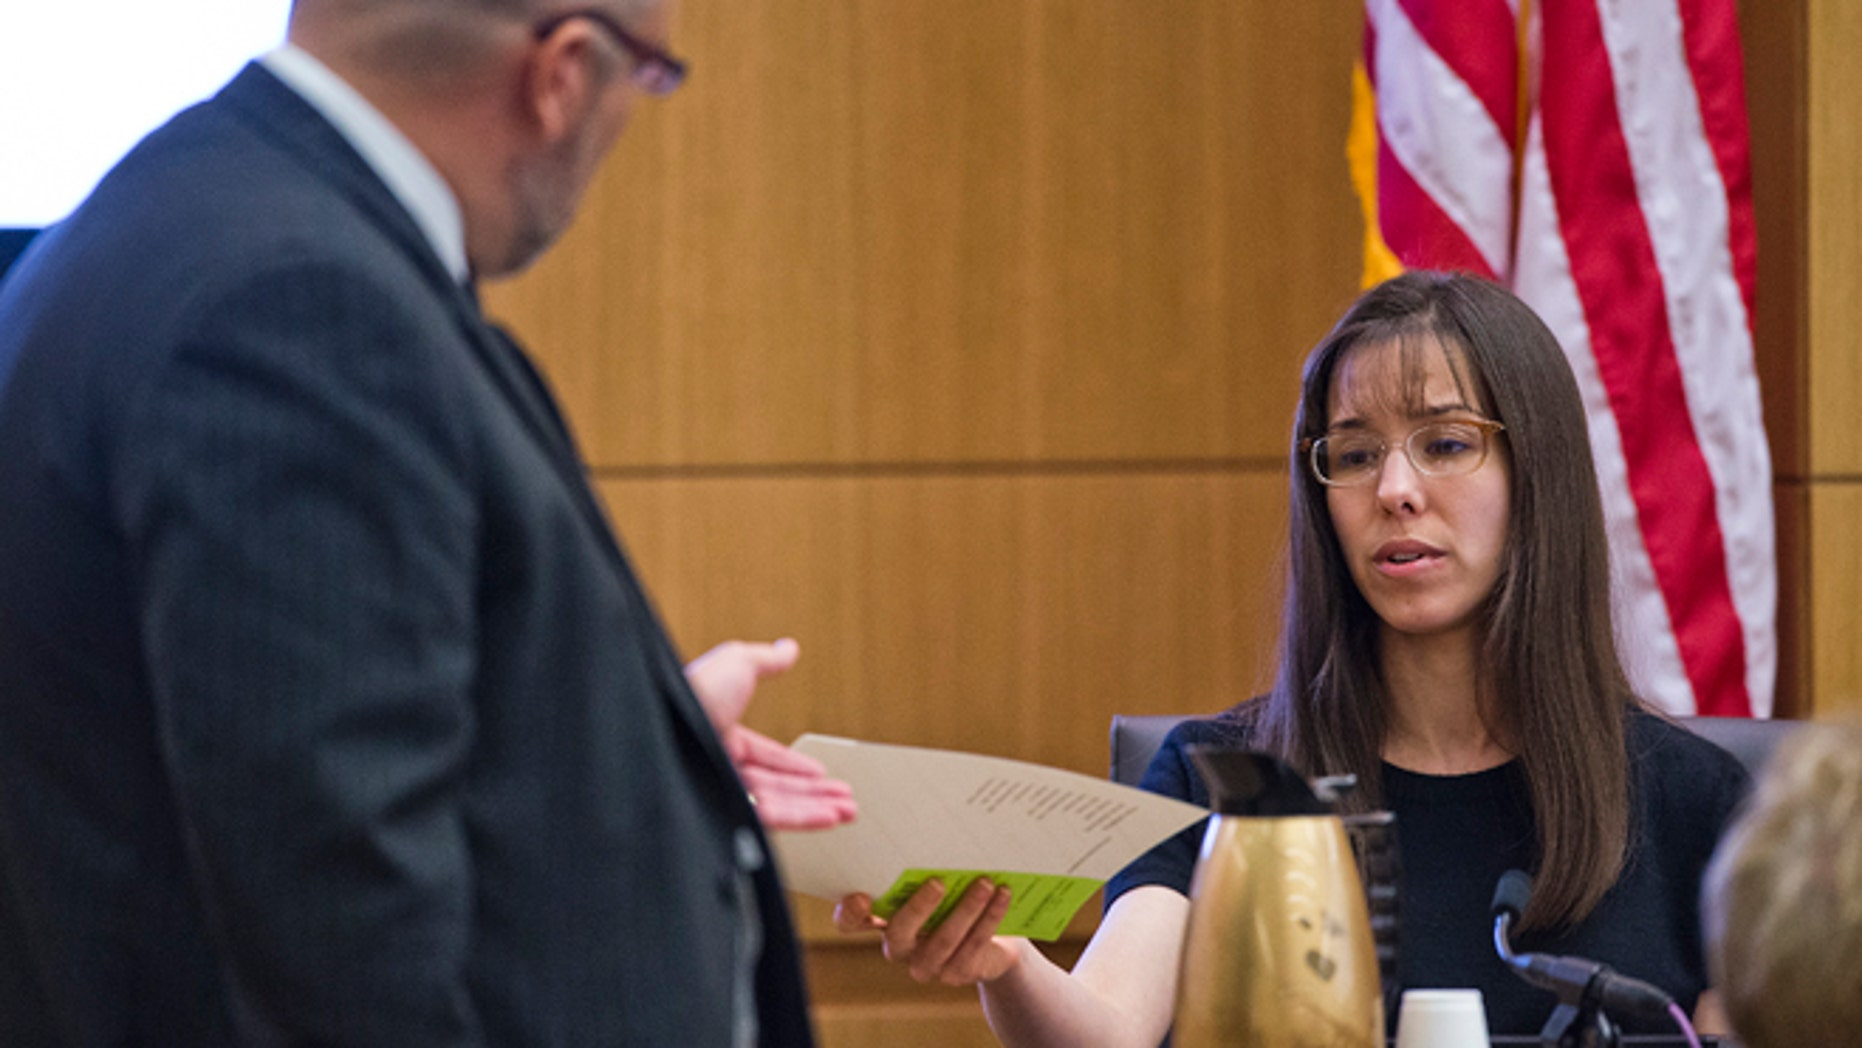 March 4, 2013: Jodi Arias, right,  is questioned during redirect from defense attorney Kirk Nurmi, left, in Maricopa County Superior Court in downtown Phoenix.  Arias is on trial for the murder of Travis Alexander in 2008.